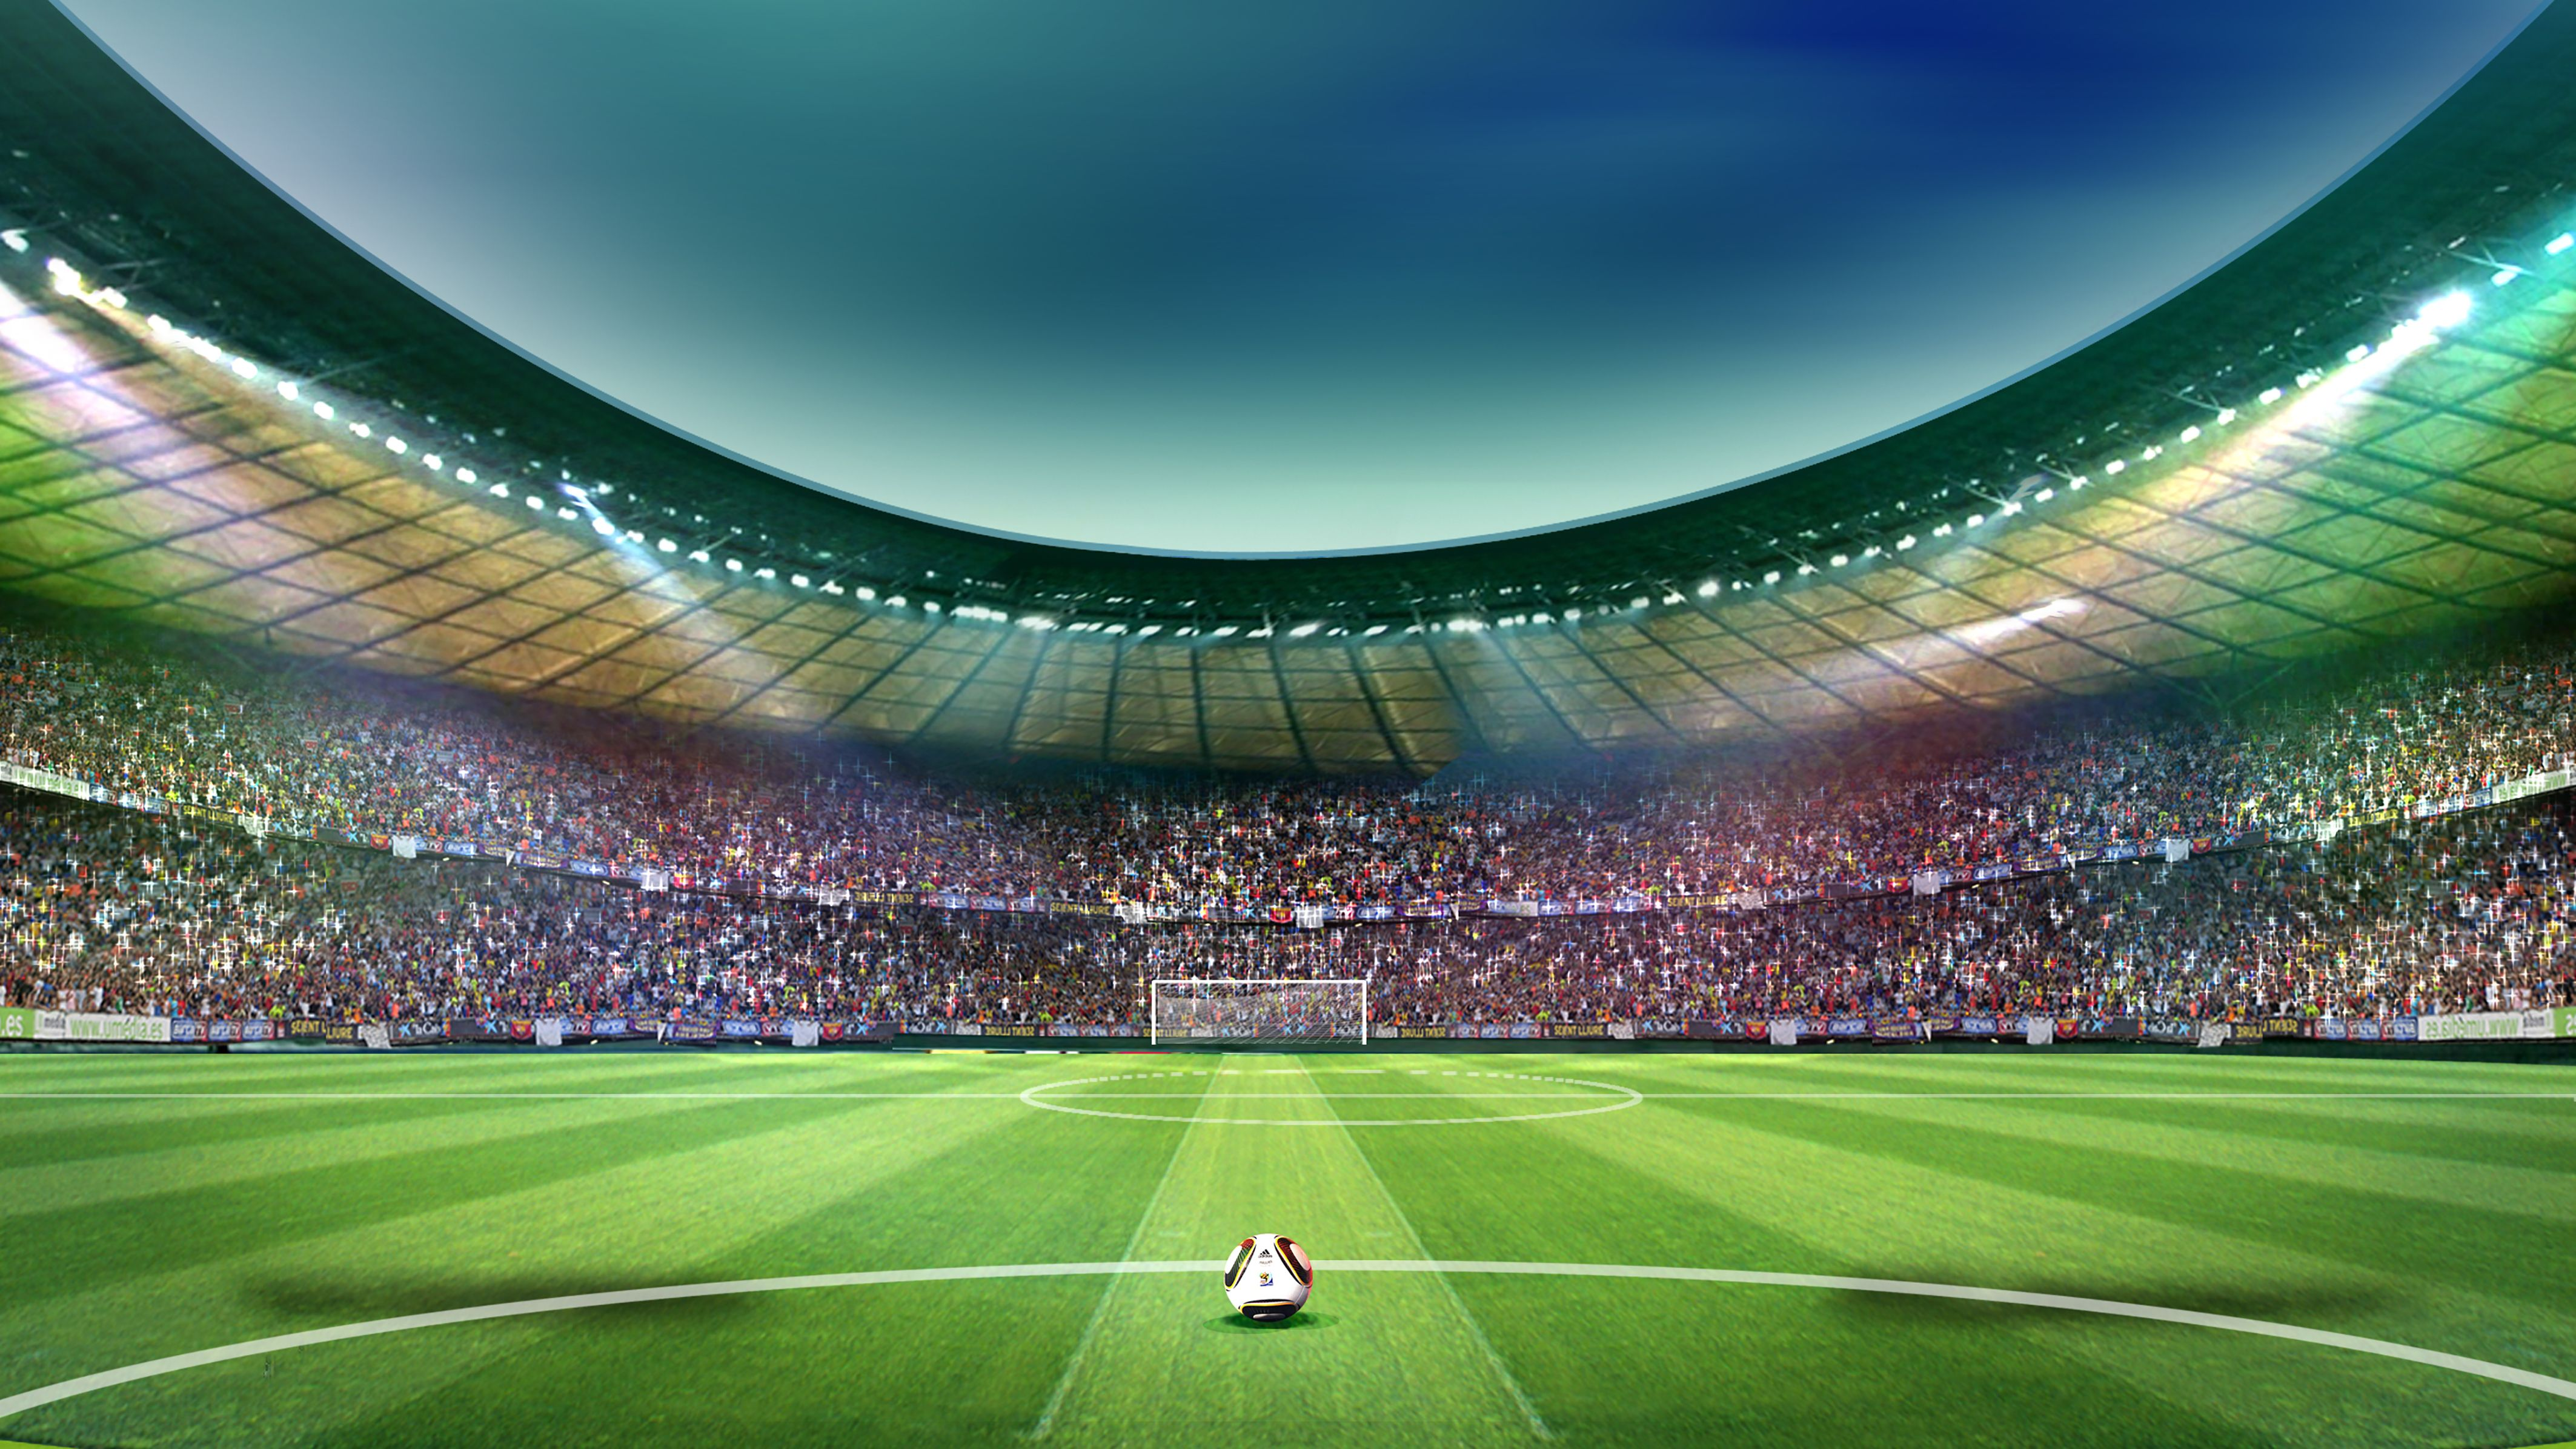 Football Playground Meadow Stand Field Sport Competition Flag Player Ball Championship Crowd Event Athlete Stadium Football Stadiums Soccer Field Soccer Poster